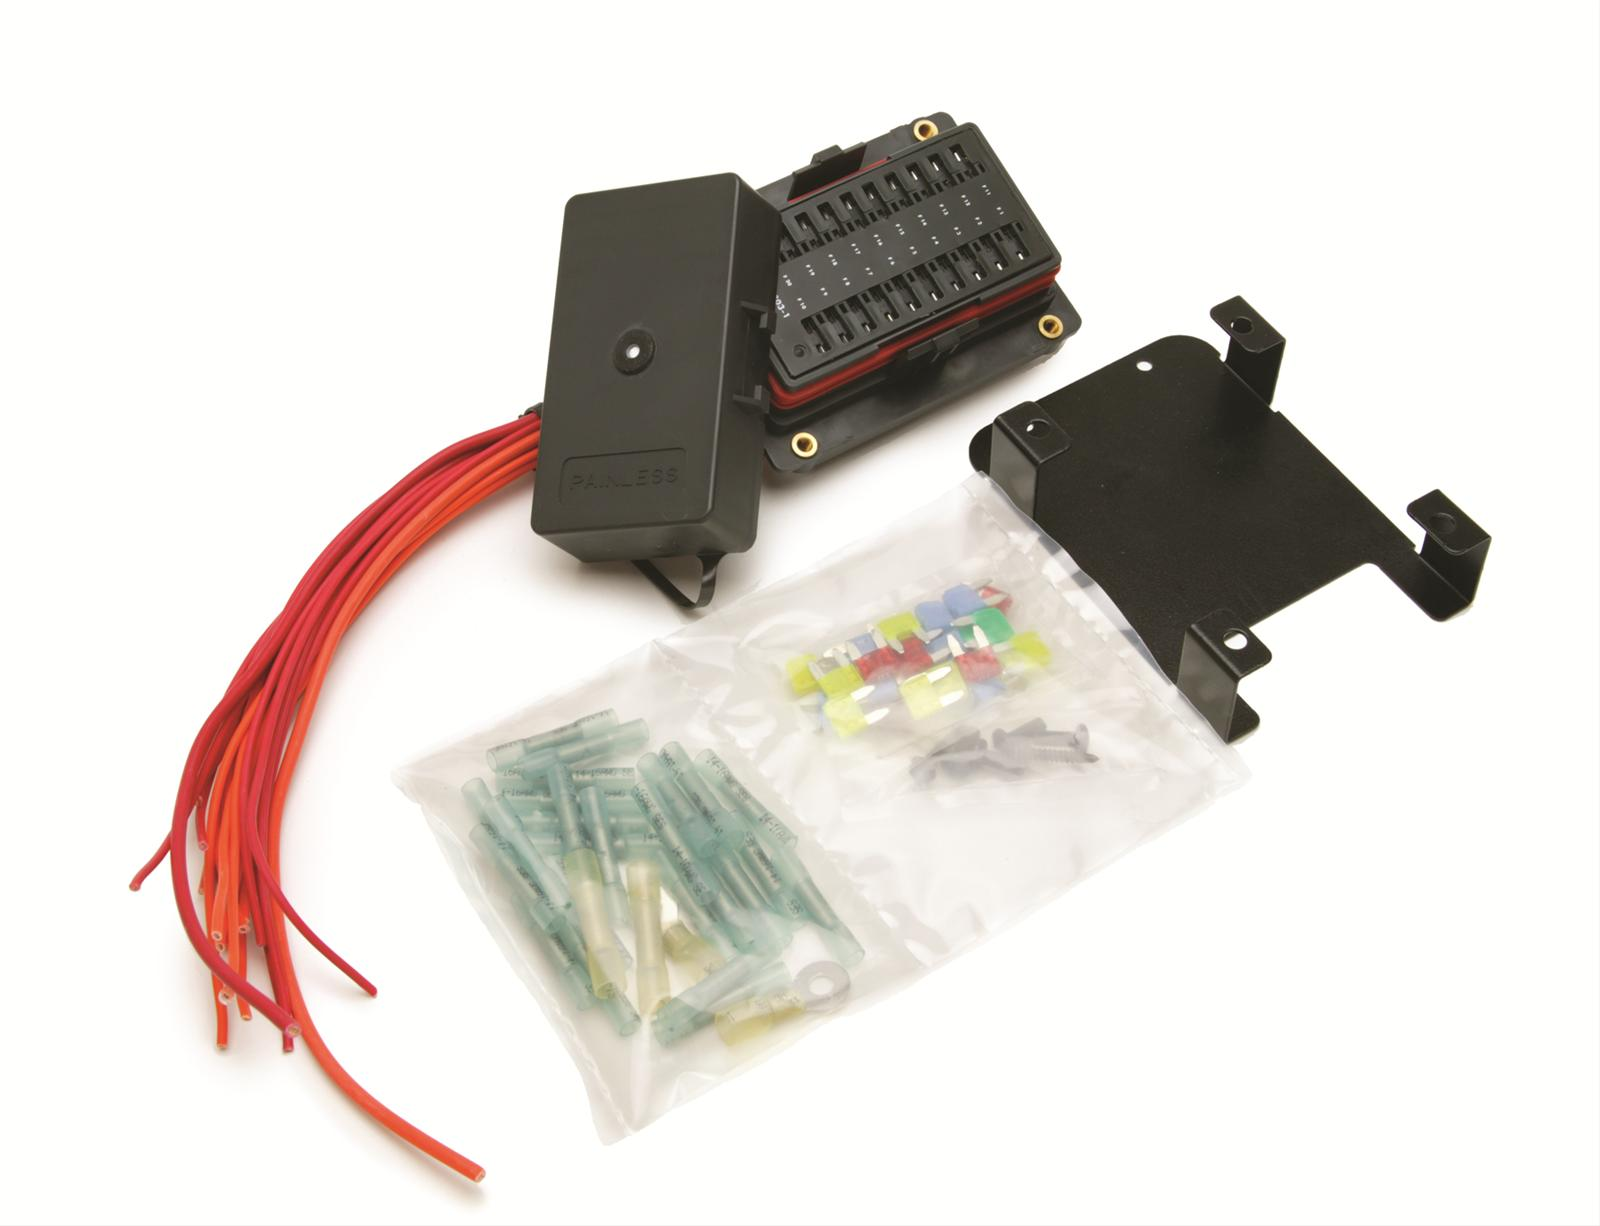 Painless Performance Universal Fuse Blocks 30004 - Free Shipping on Orders  Over $49 at Summit Racing